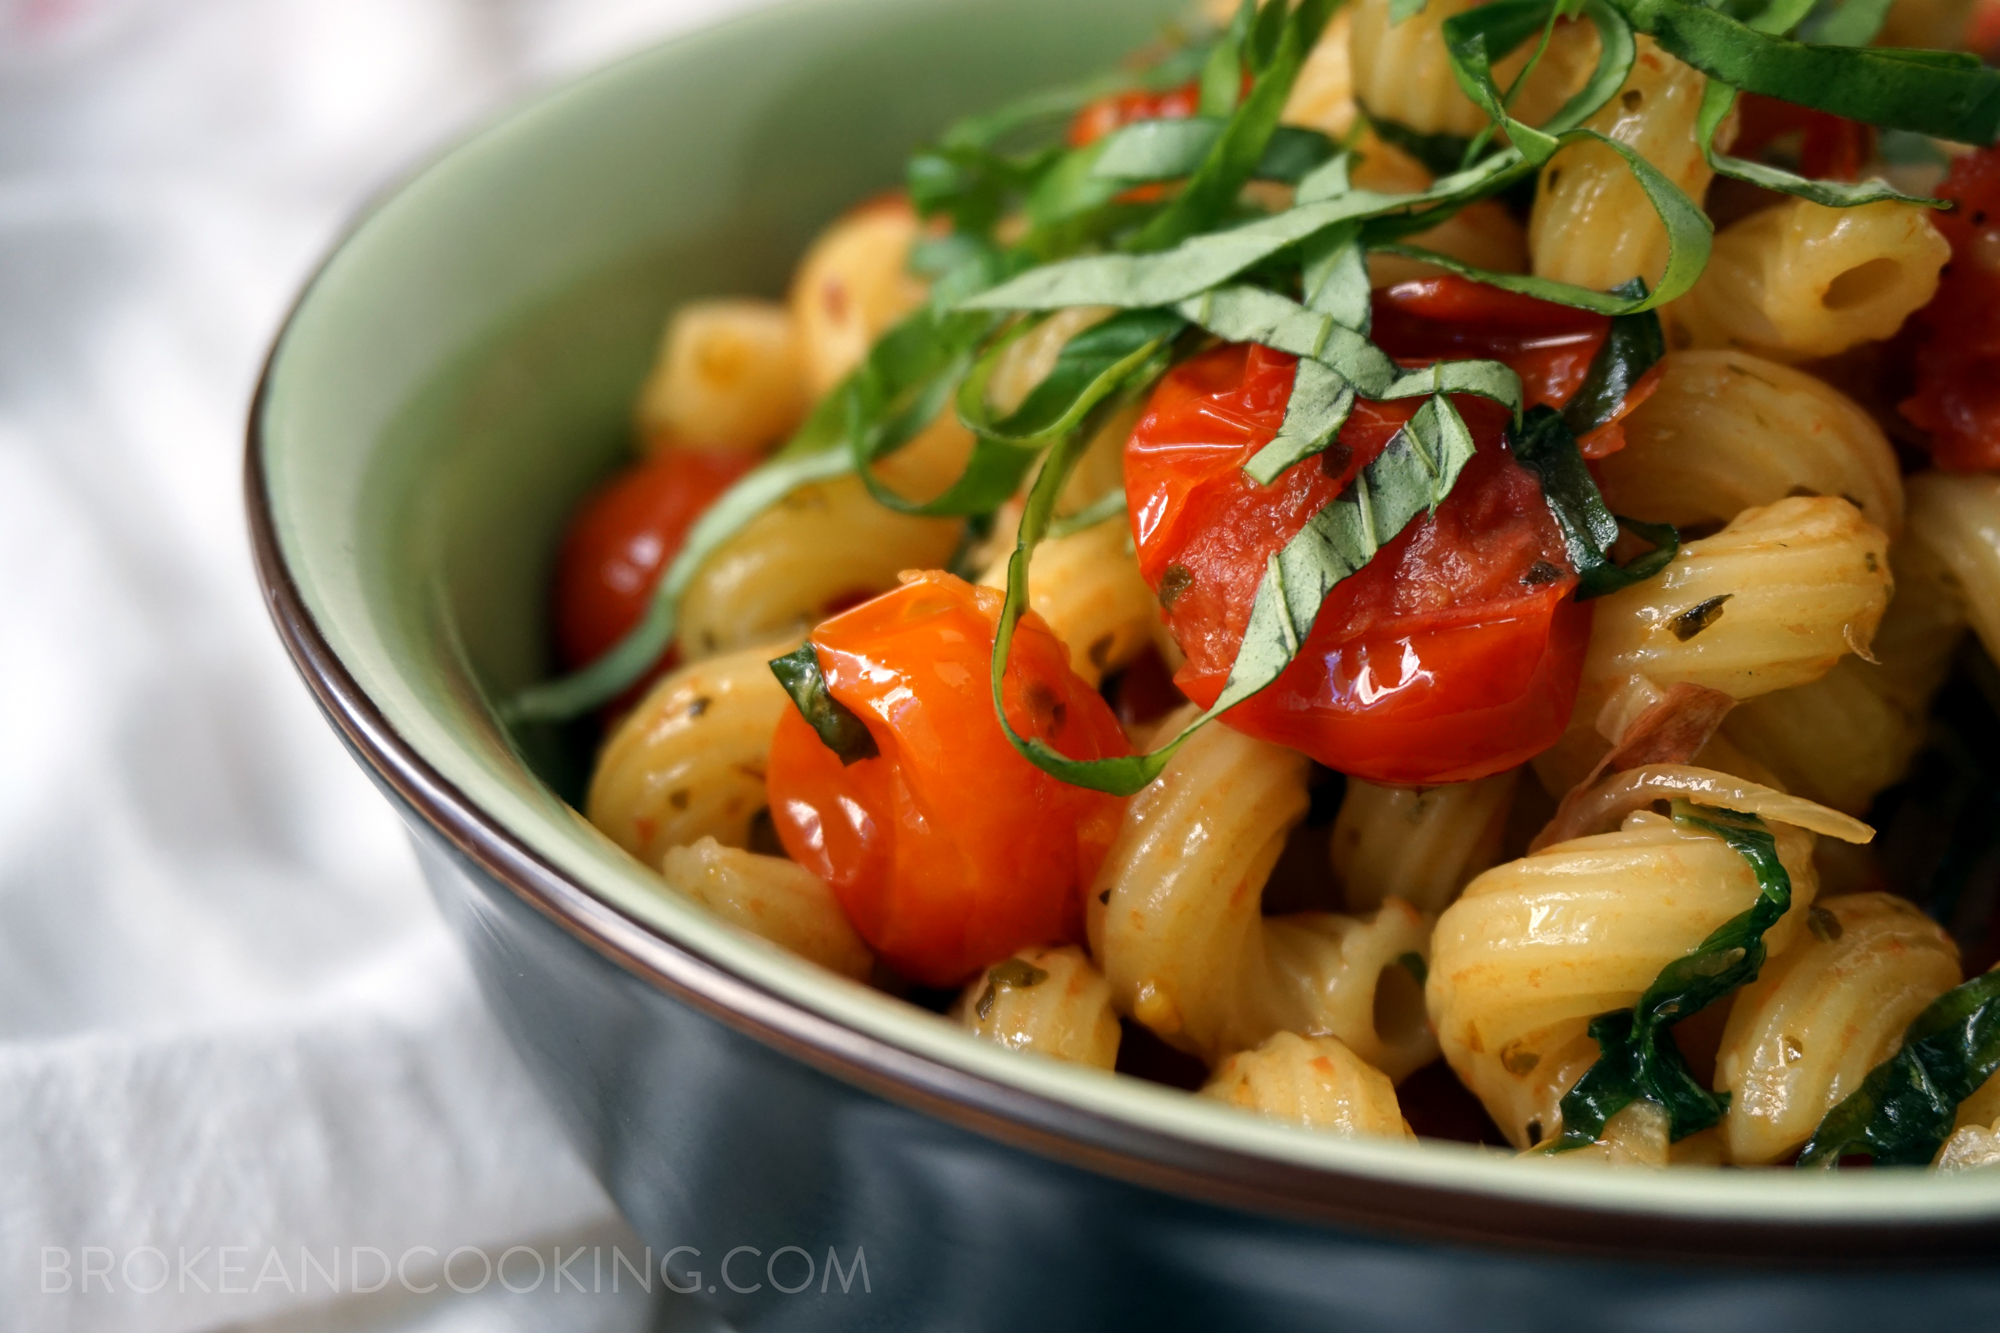 A simple toss-together pasta: Cavatappi with Buttery Tomato and Shallot Sauce